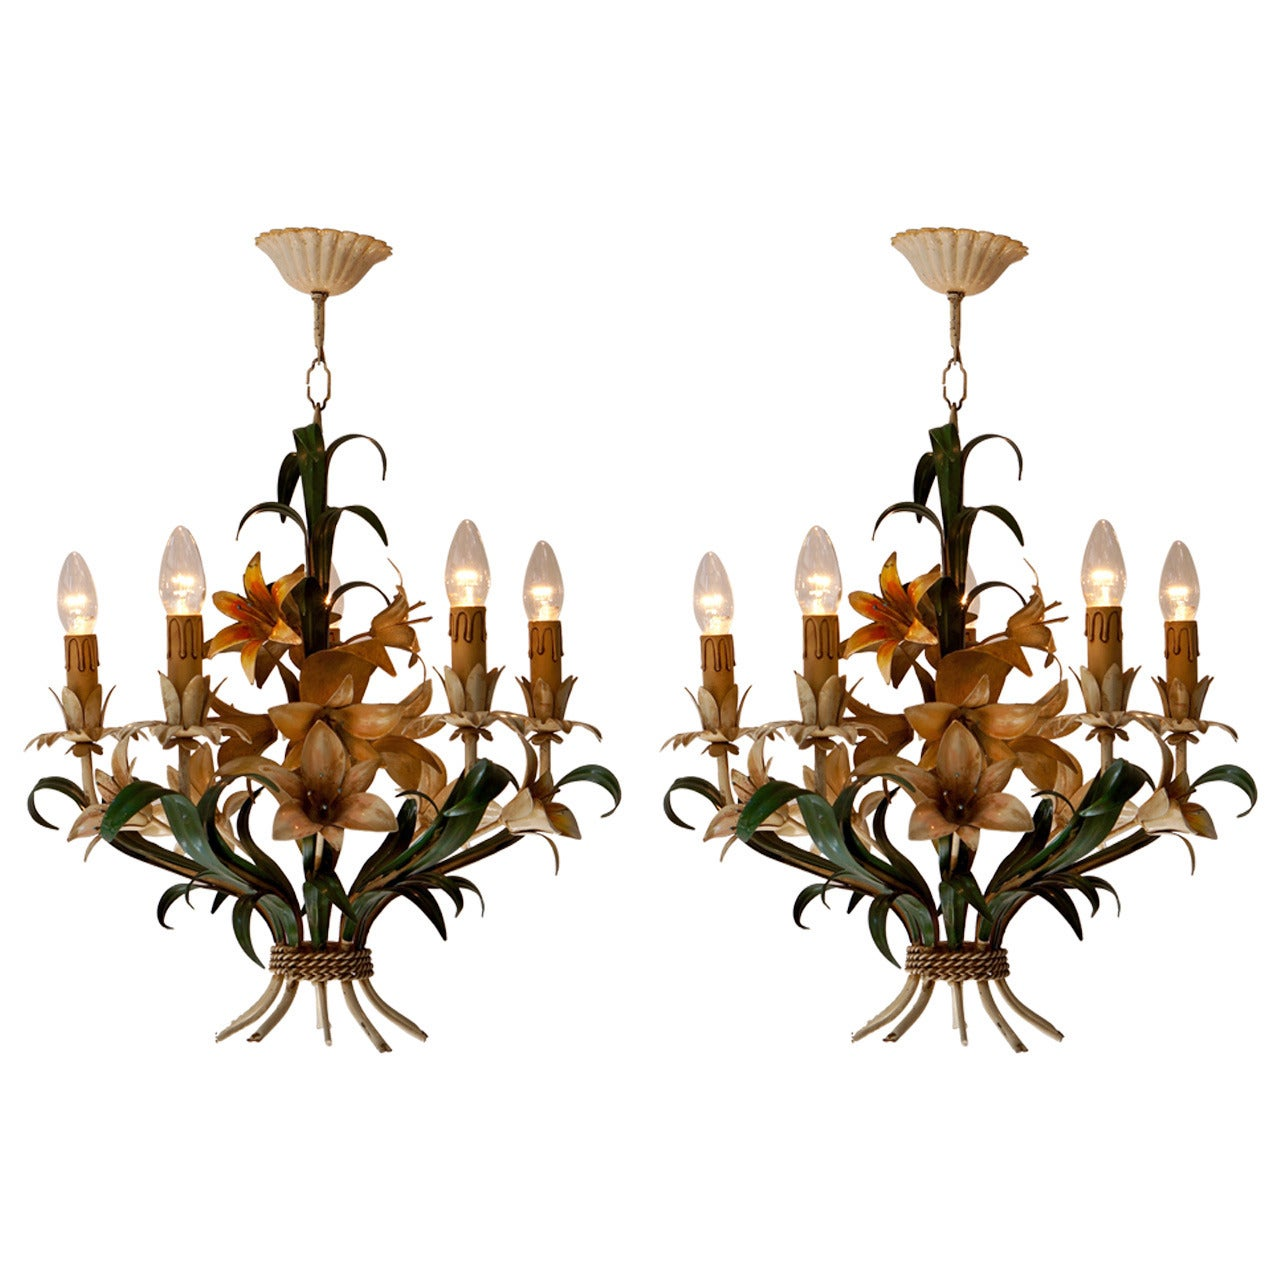 One of Two Italian Tole with Flowers Polychrome Chandeliers